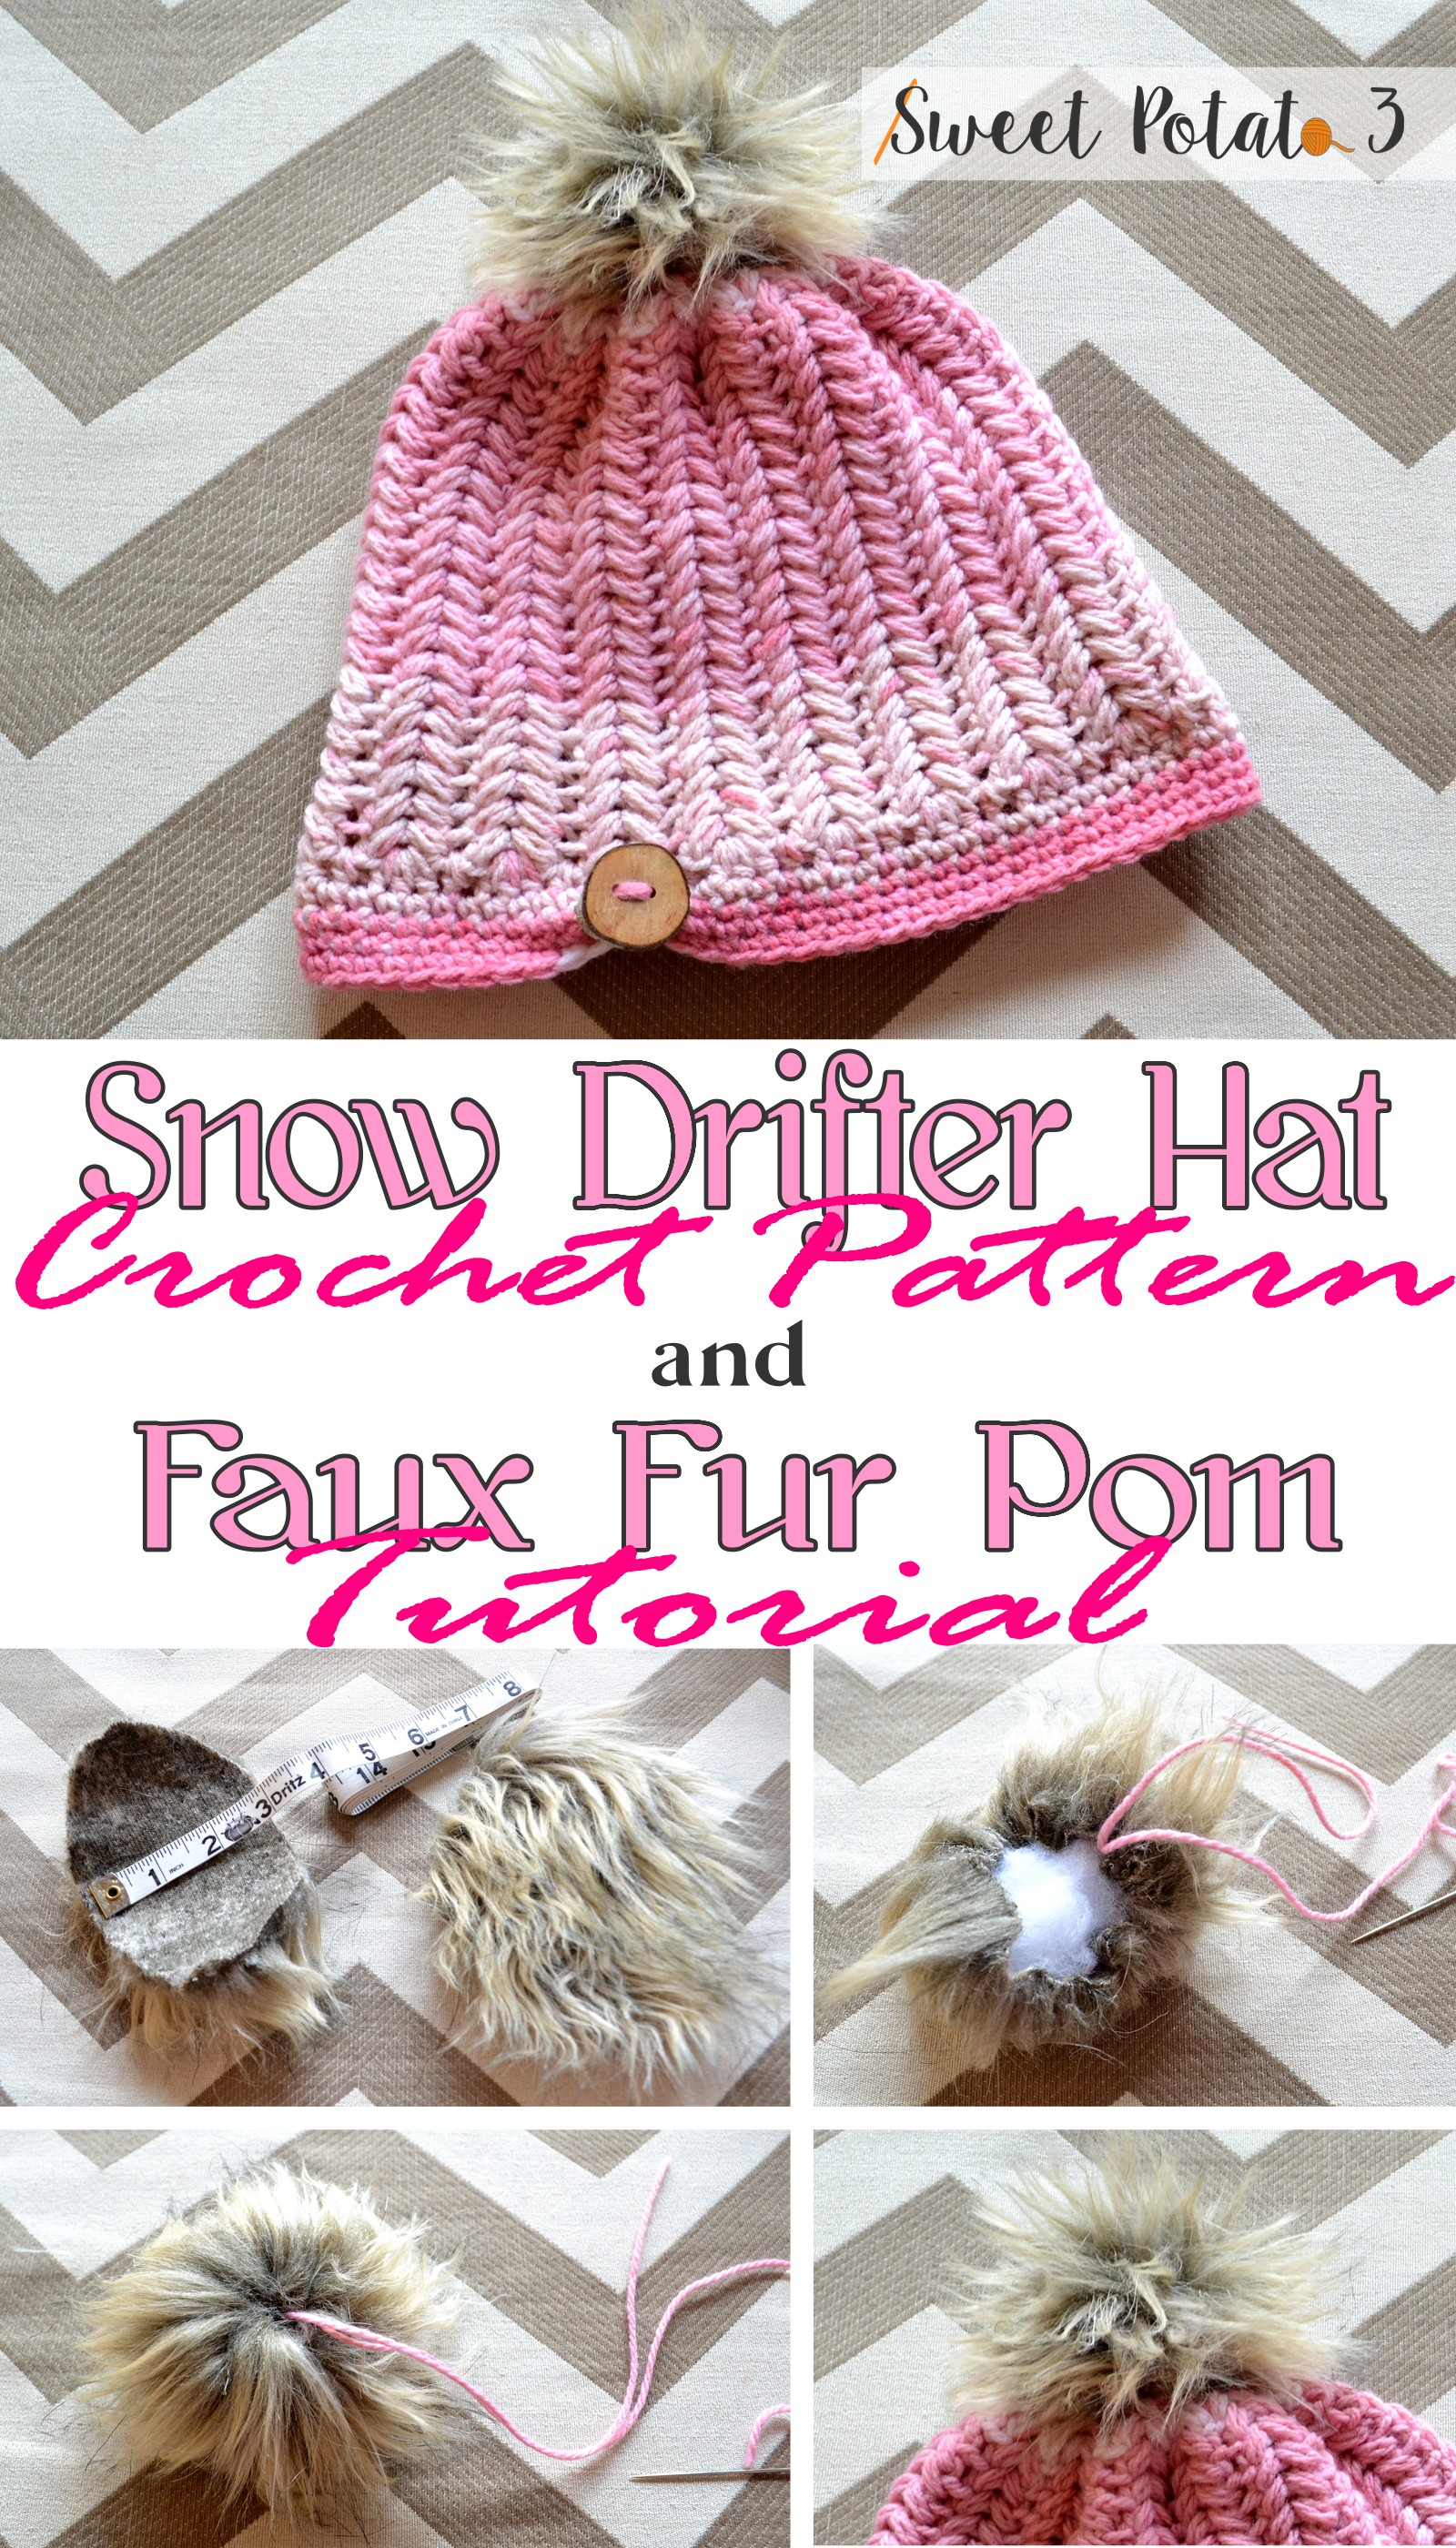 You are currently viewing Snow Drifter Hat Pattern & Faux Fur Pom Tutorial